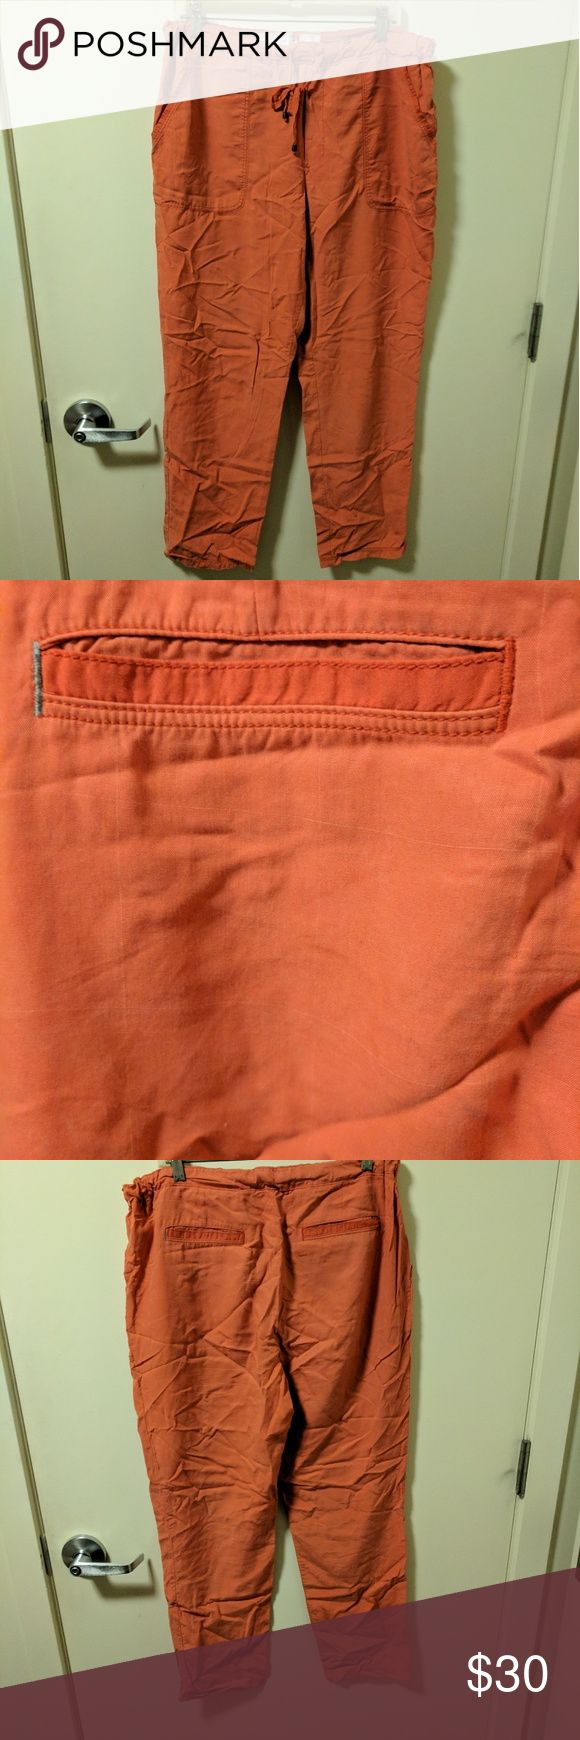 Salmon Anthropologie Drawstring Pants Lightweight rayon, loose-fitting drawstring pants from Anthropologie (Hei Hei). Worn a few times but in good condition. Salmon-colored. Anthropologie Pants